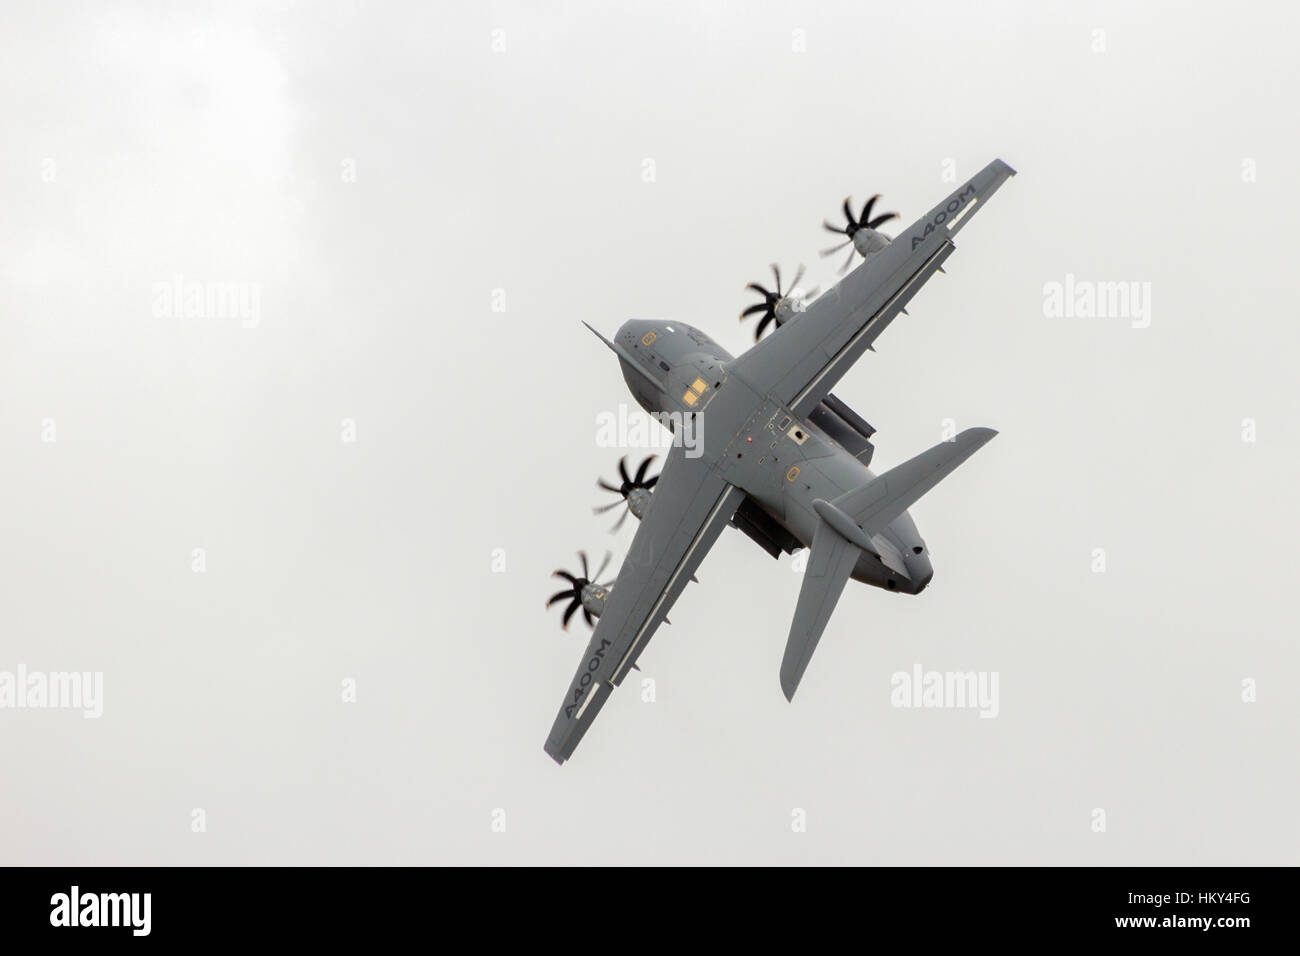 PARIS - JUN 18, 2015: New Airbus A400M military transport plane in a steep take-off. The first A400M was delivered - Stock Image